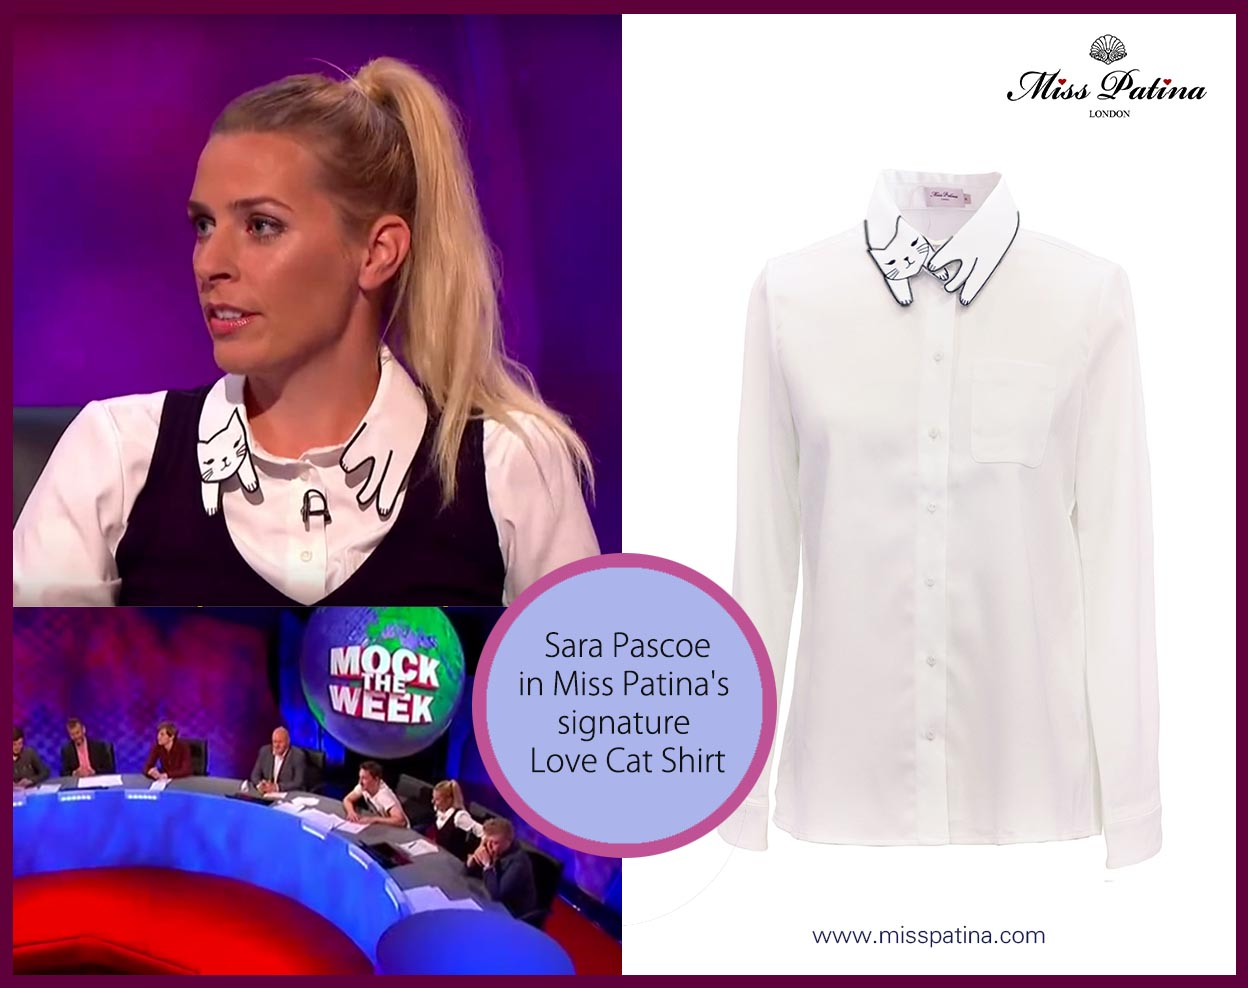 Spotted: Actress Sara Pascoe in Miss Patina!